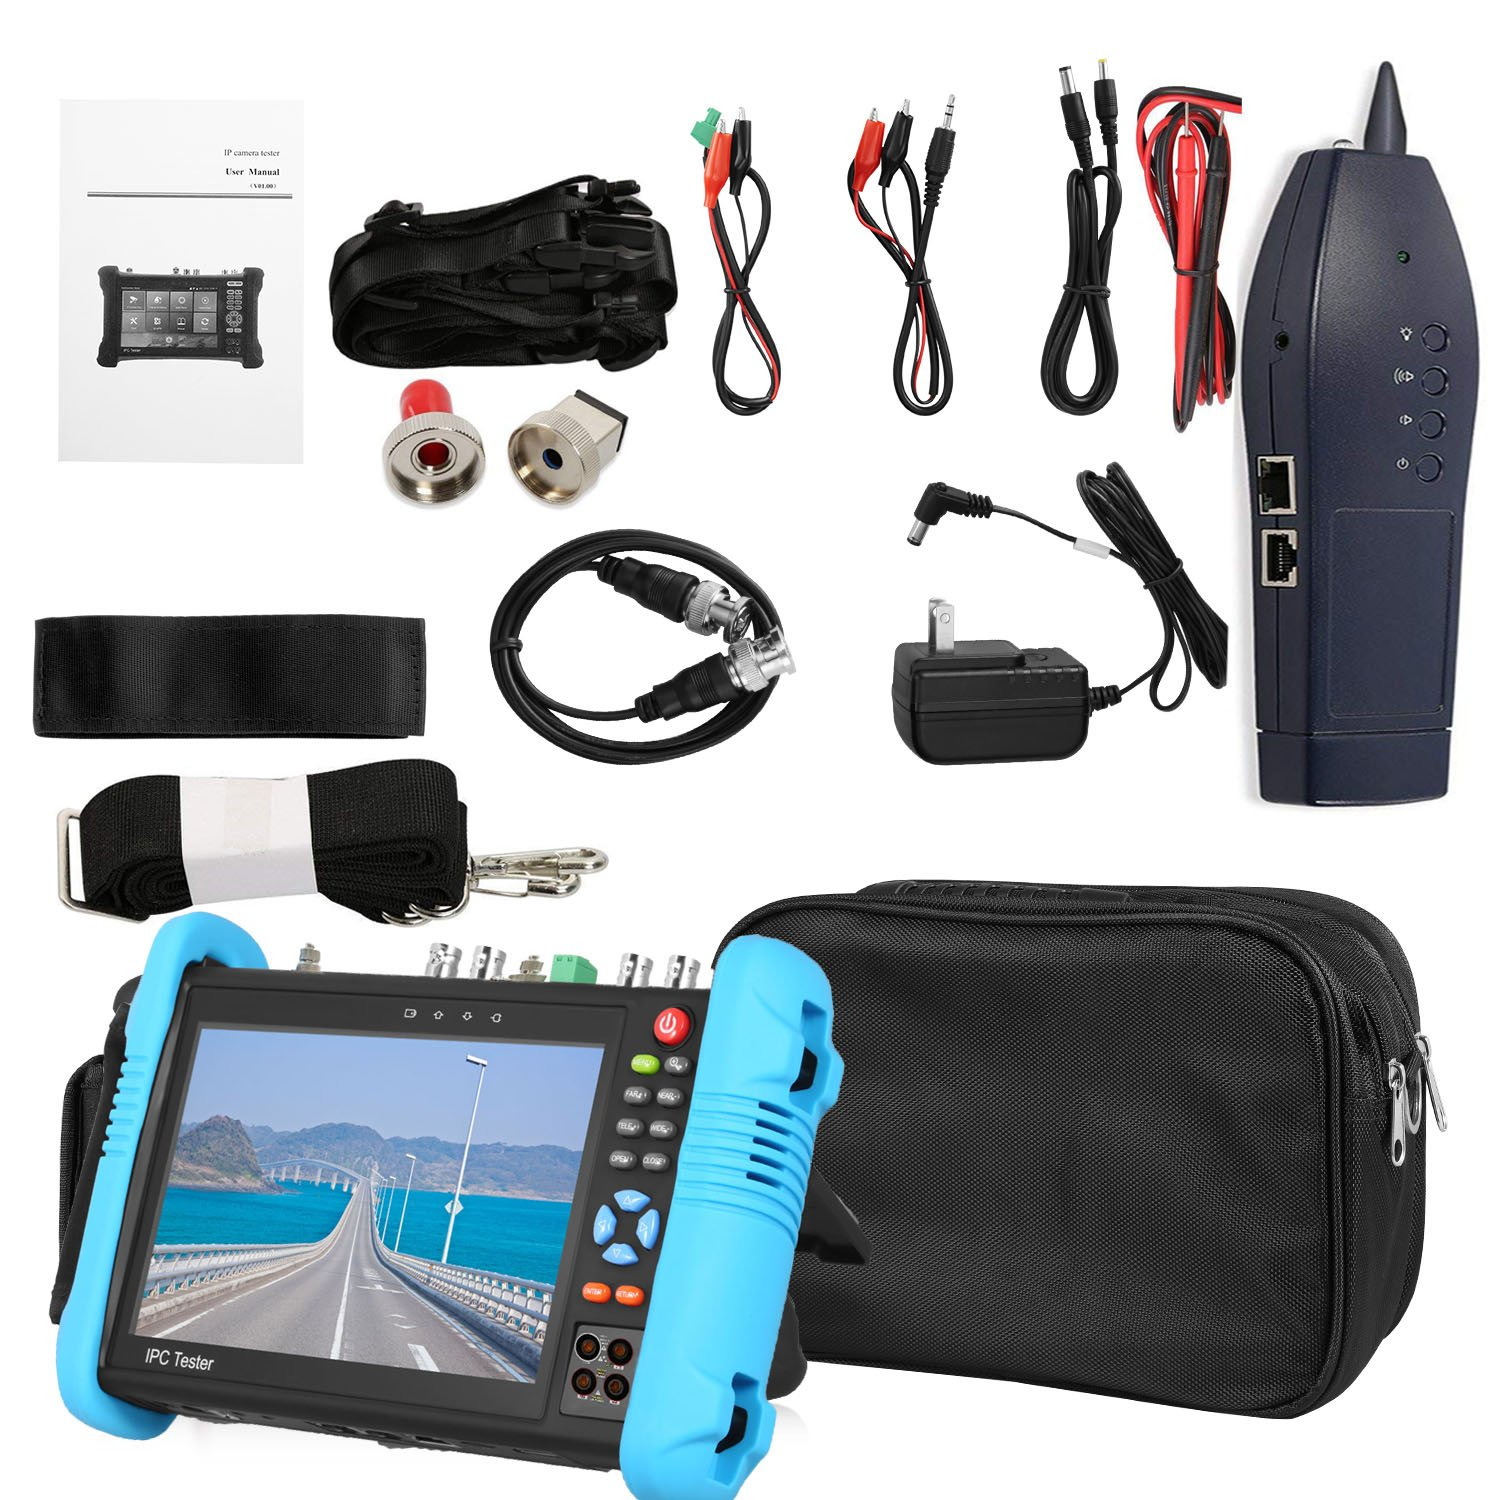 SGEF 7 inch All in One IPS Touch Screen IP Camera Tester Security CCTV Tester Monitor with SDI/TVI/AHD/CVI/POE/WIFI/4K H.265/HDMI in&Out/RJ45-TDR/OPM/VFL 9800MOTVADHS by SGEF (Image #2)